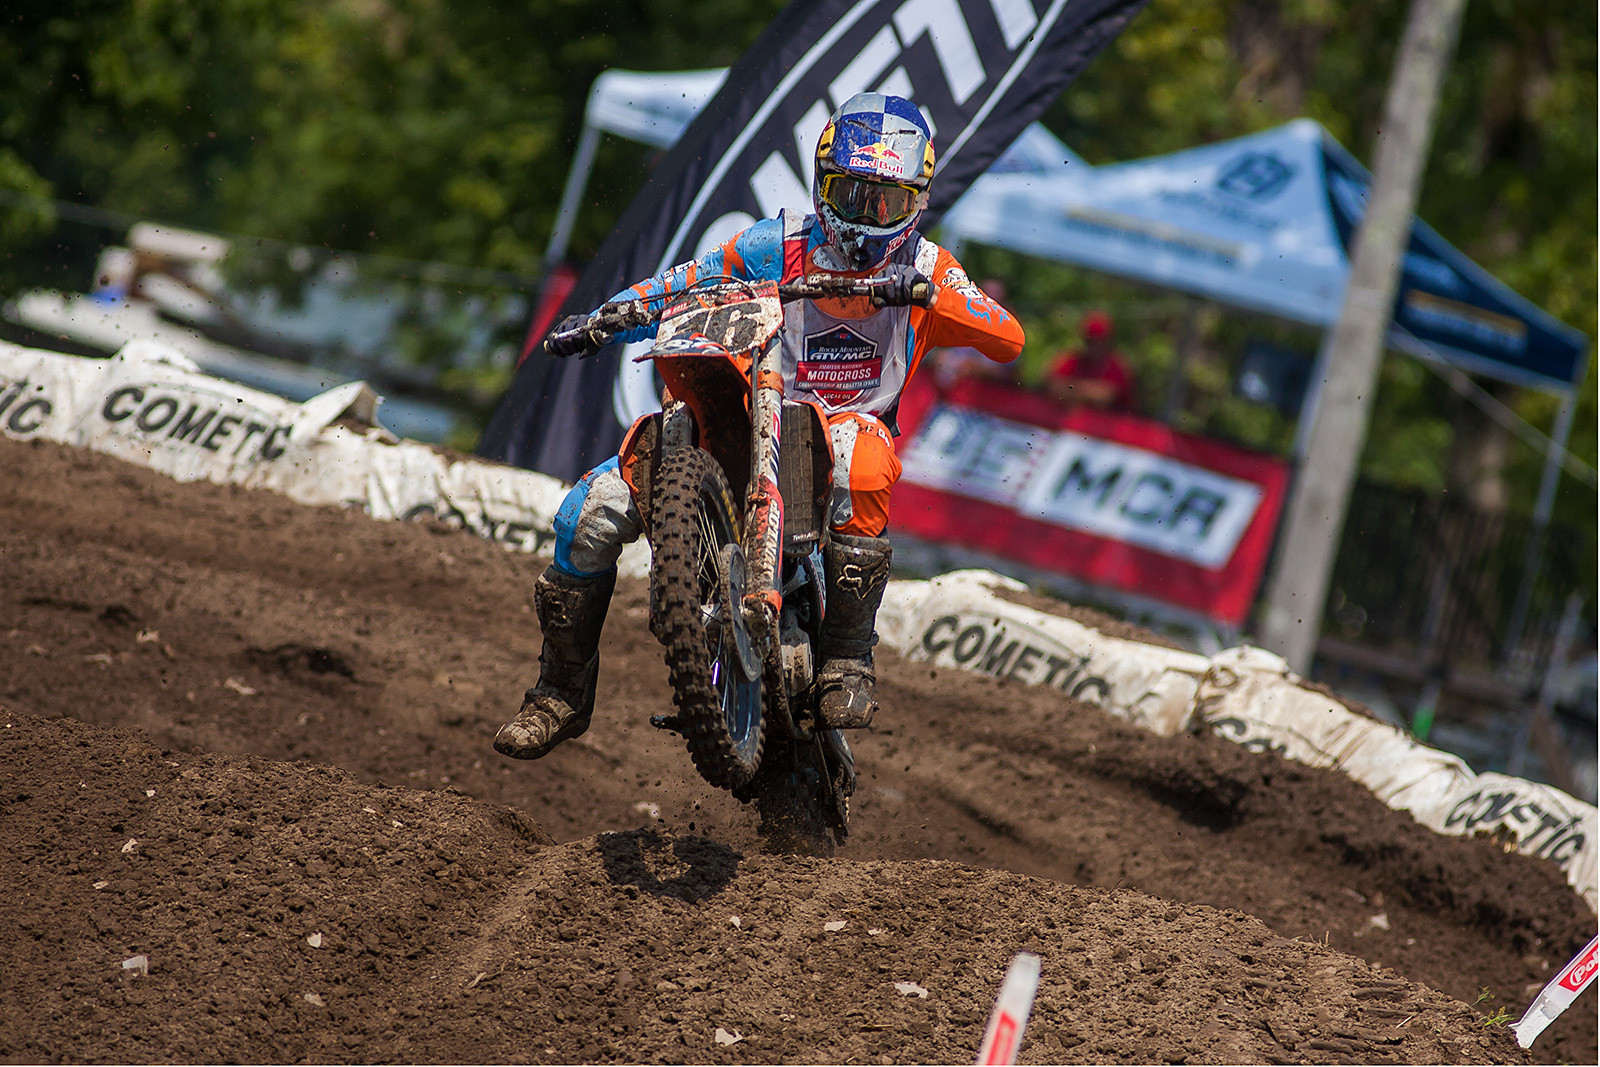 Enzo Lopes gave Justin Cooper quite the race in the 250 A class.